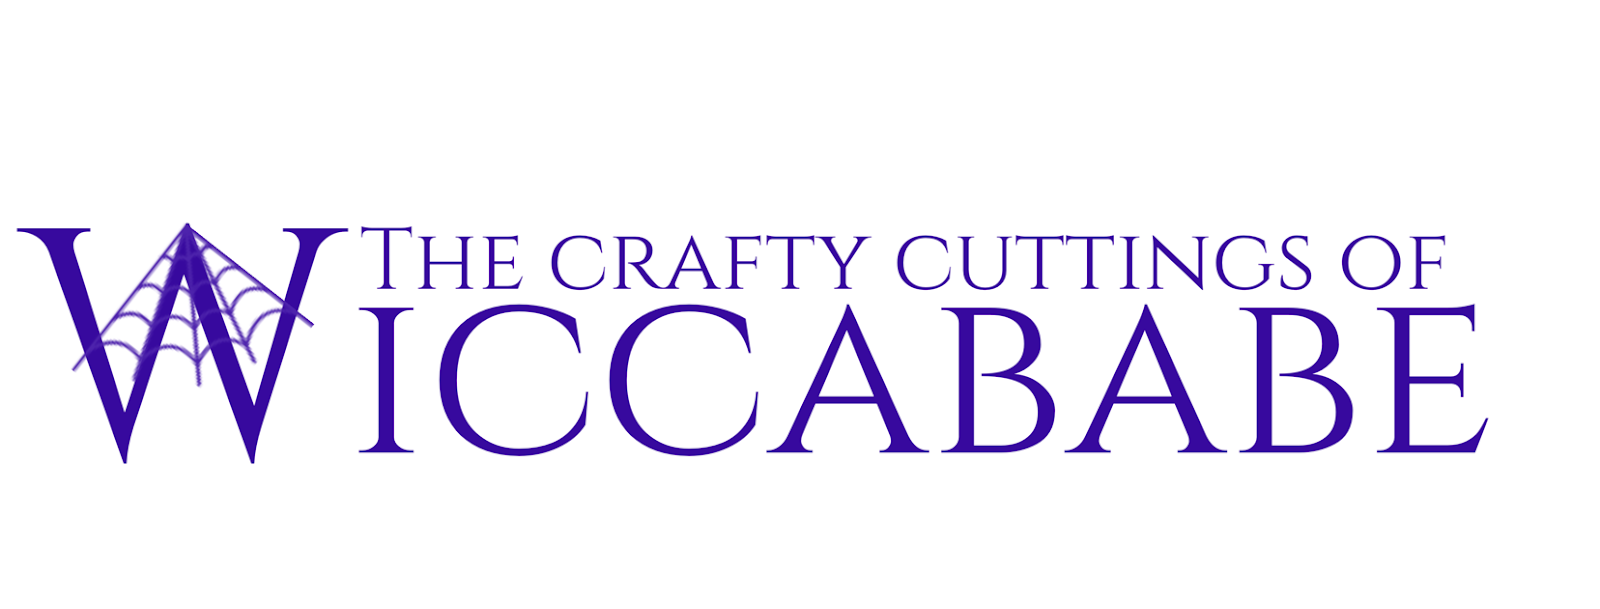 The Crafty Cuttings of Wiccababe